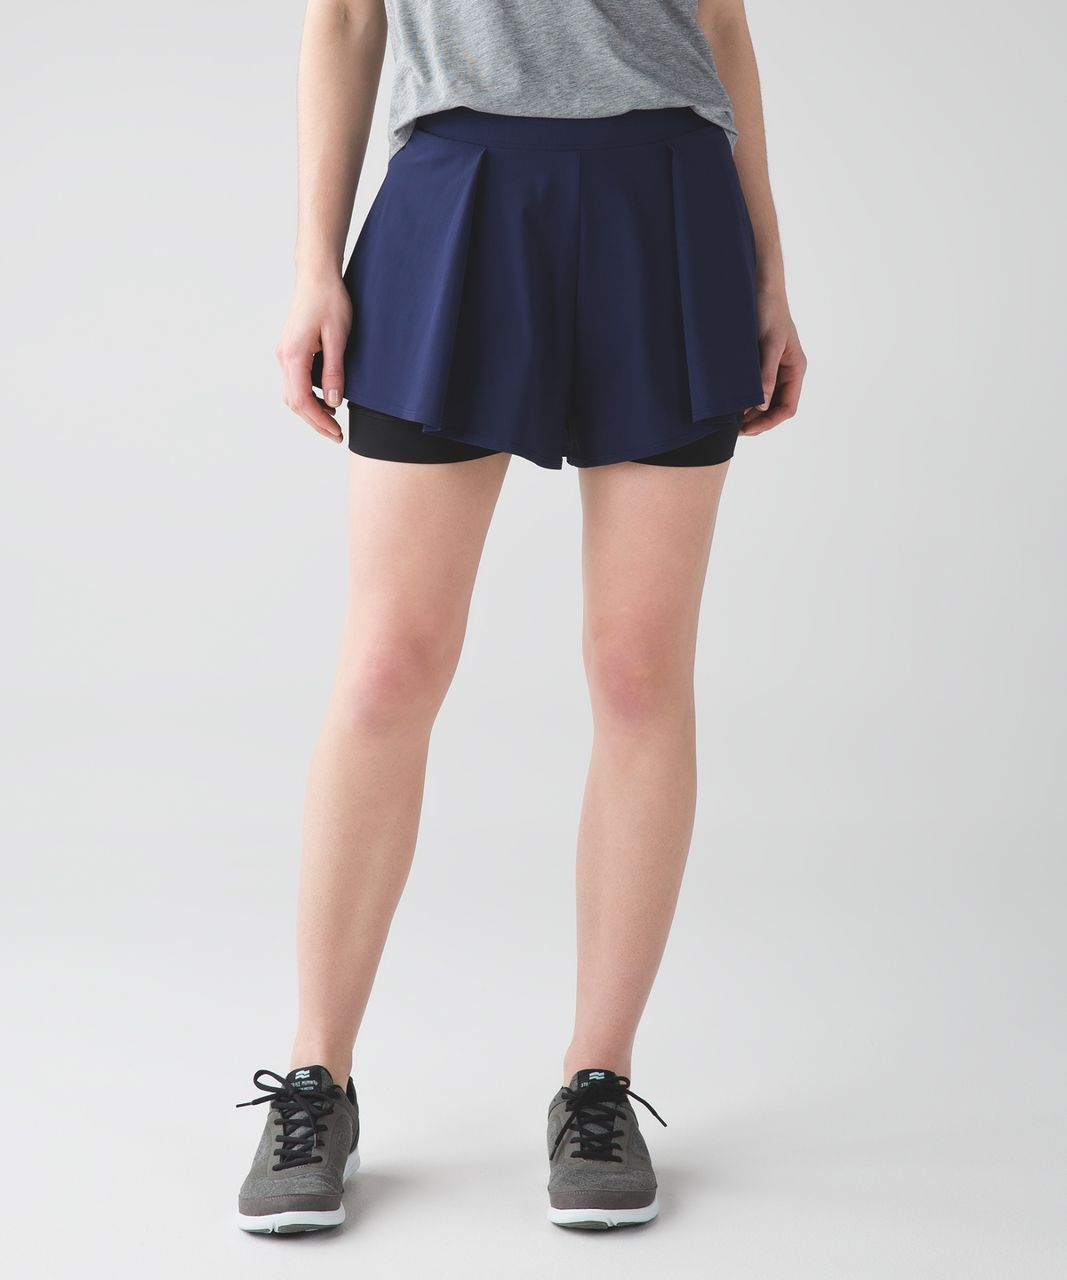 Lululemon Cruiser Short - Deep Navy / Black